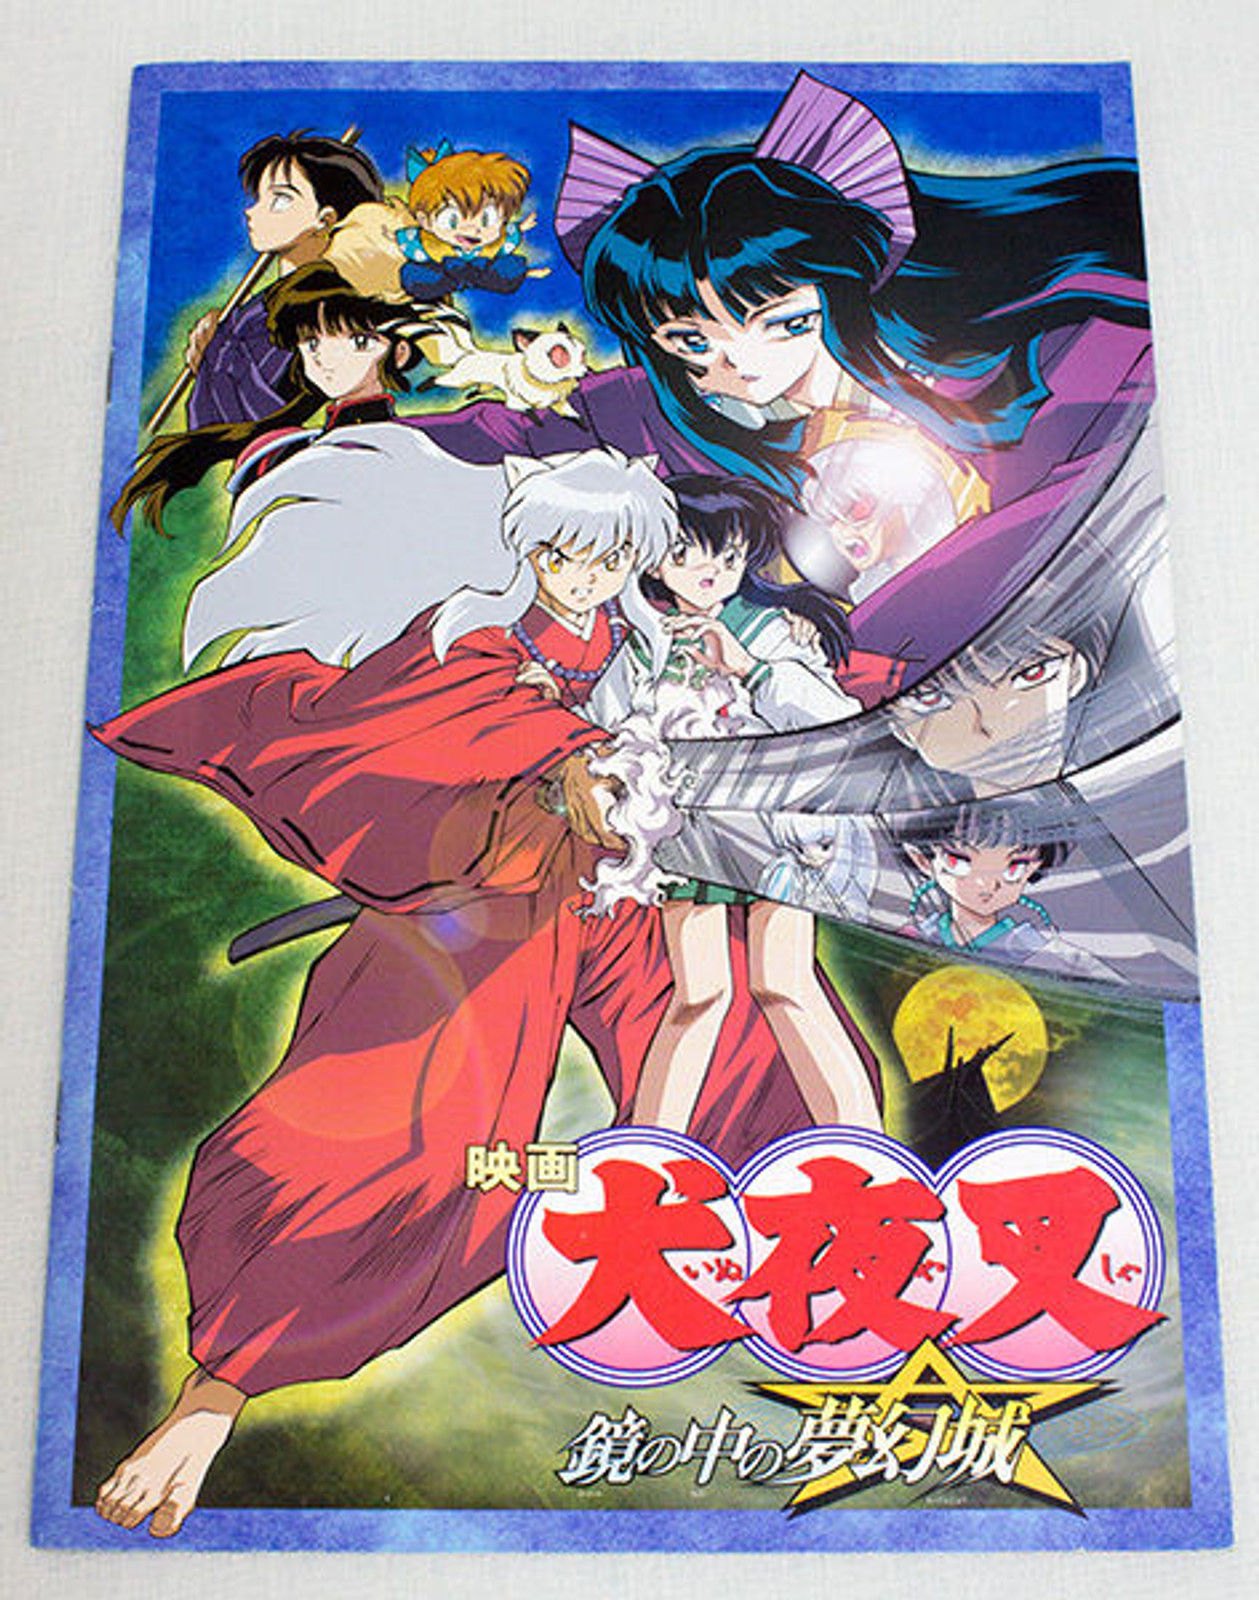 Inuyasha Movie Program Art Illustration book Rumiko Takahashi JAPAN ANIME